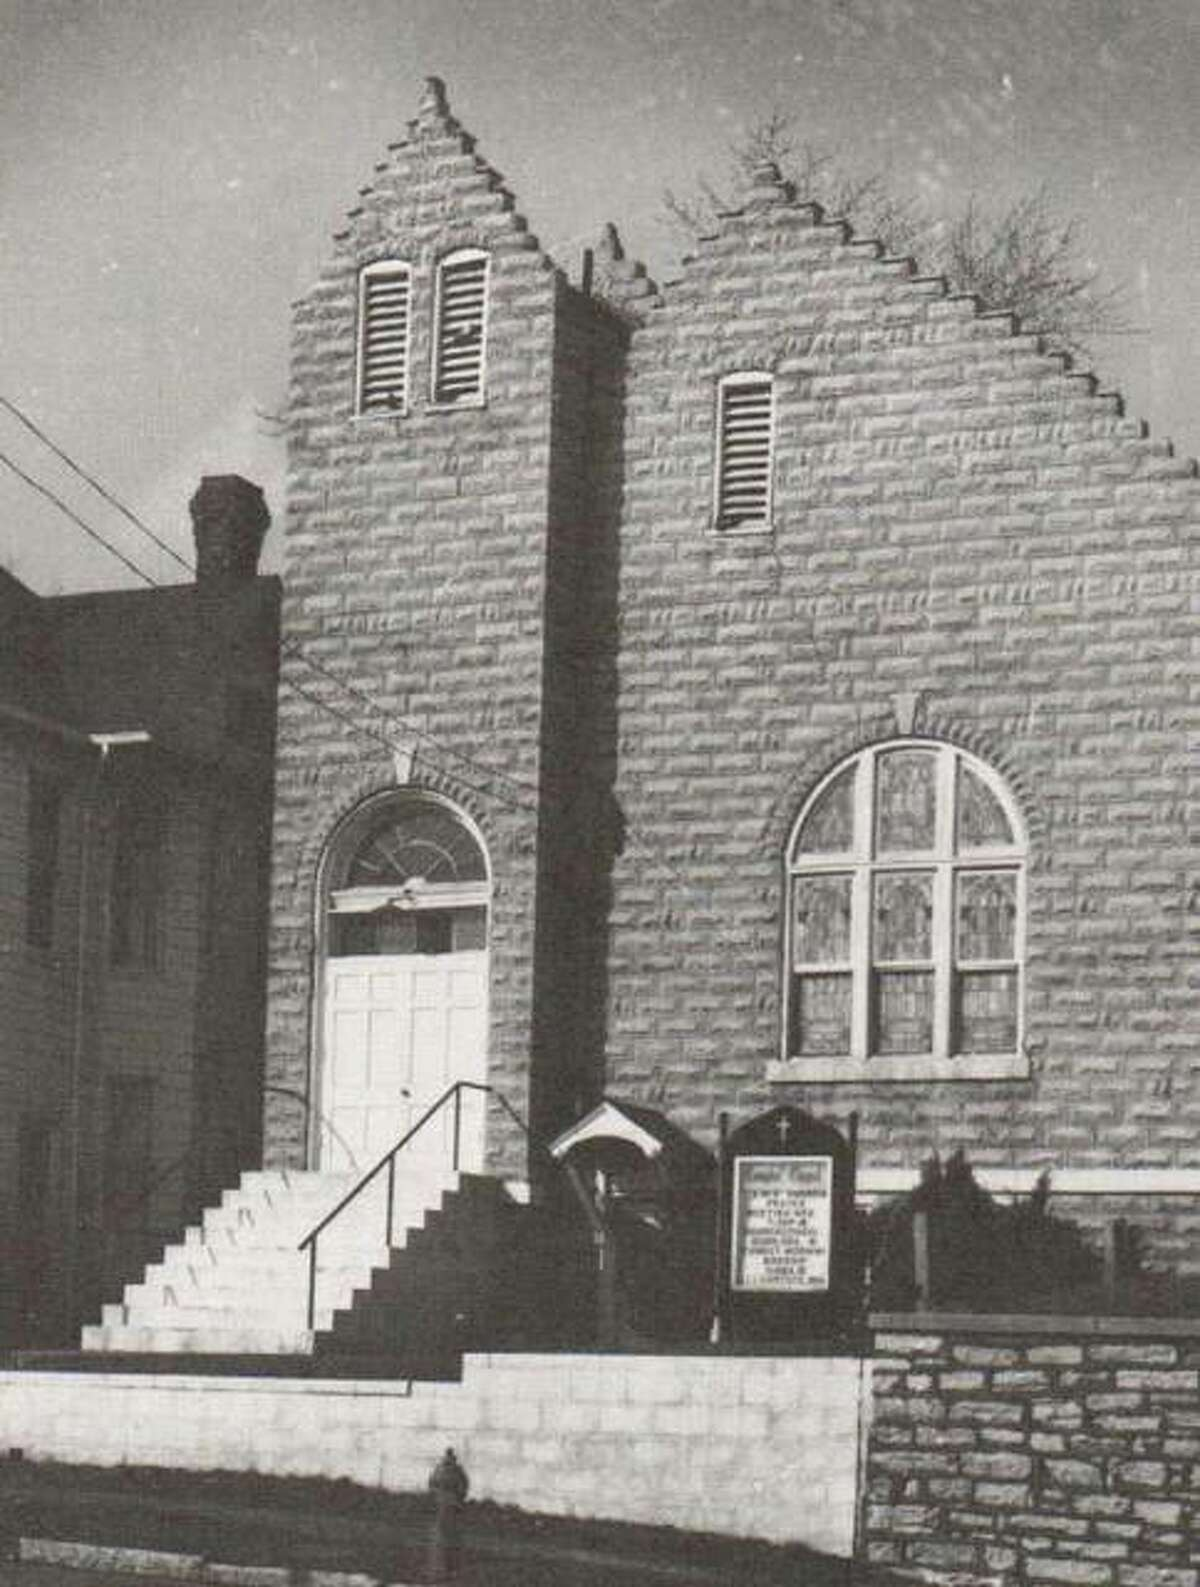 The Campbell Chapel African Methodist Episcopal (AME) Church was established in about 1844, when twelve Alton Negroes began meeting with Paul Quinn, a missionary who founded many churches for disinherited black Americans. Their first building was located on Third Street between Oak and Central. In the 1860's when Colonel Hunter laid out Hunter's Addition, he deeded the land to the congregation. The church was completed in 1867, but was damaged by fire in 1972. It was remodeled, and still is one of the earliest AME churches in Illinois. It was named for a bishop important in the original AME movement.